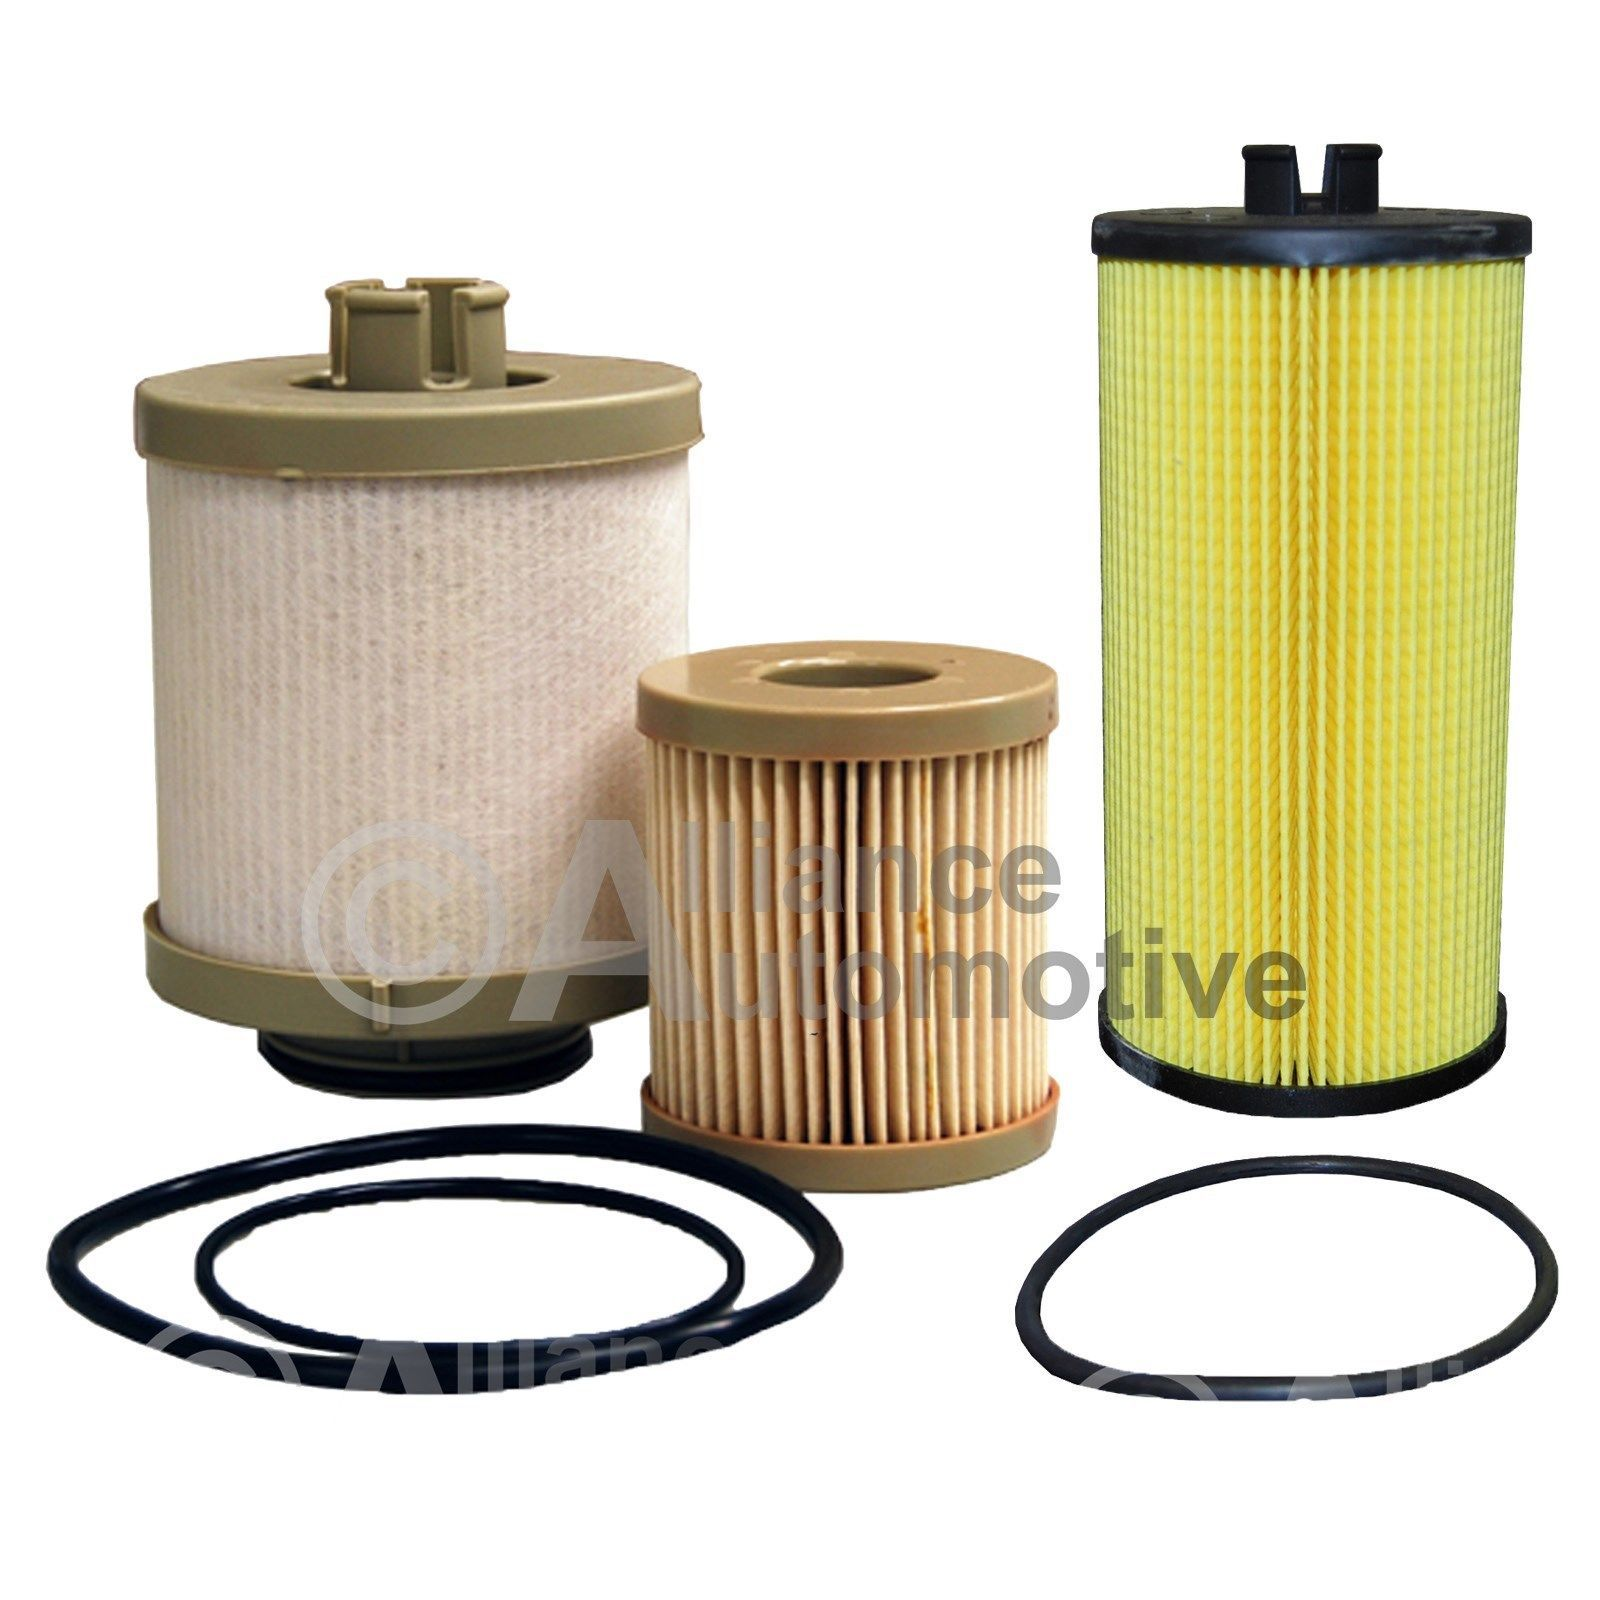 1 Fuel Oil Filter For 2003 2007 Ford F Series Powerstroke 60 6 0 Filters Turbo Diesel